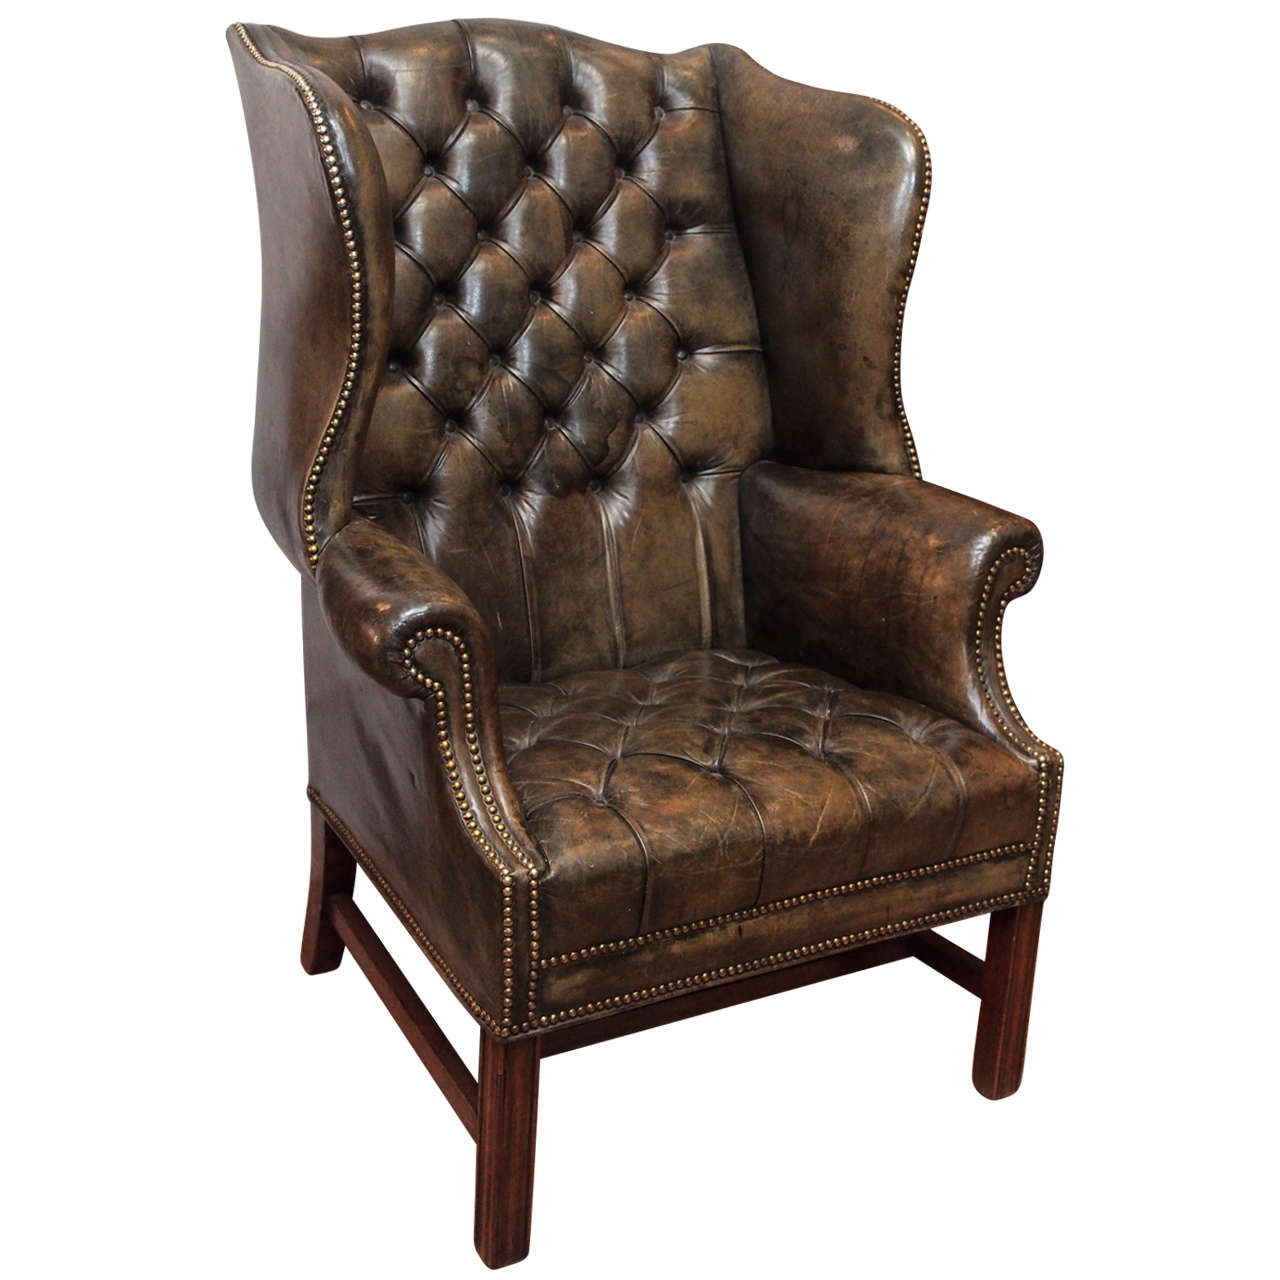 Antique english wing chair at 1stdibs for Wingback chair